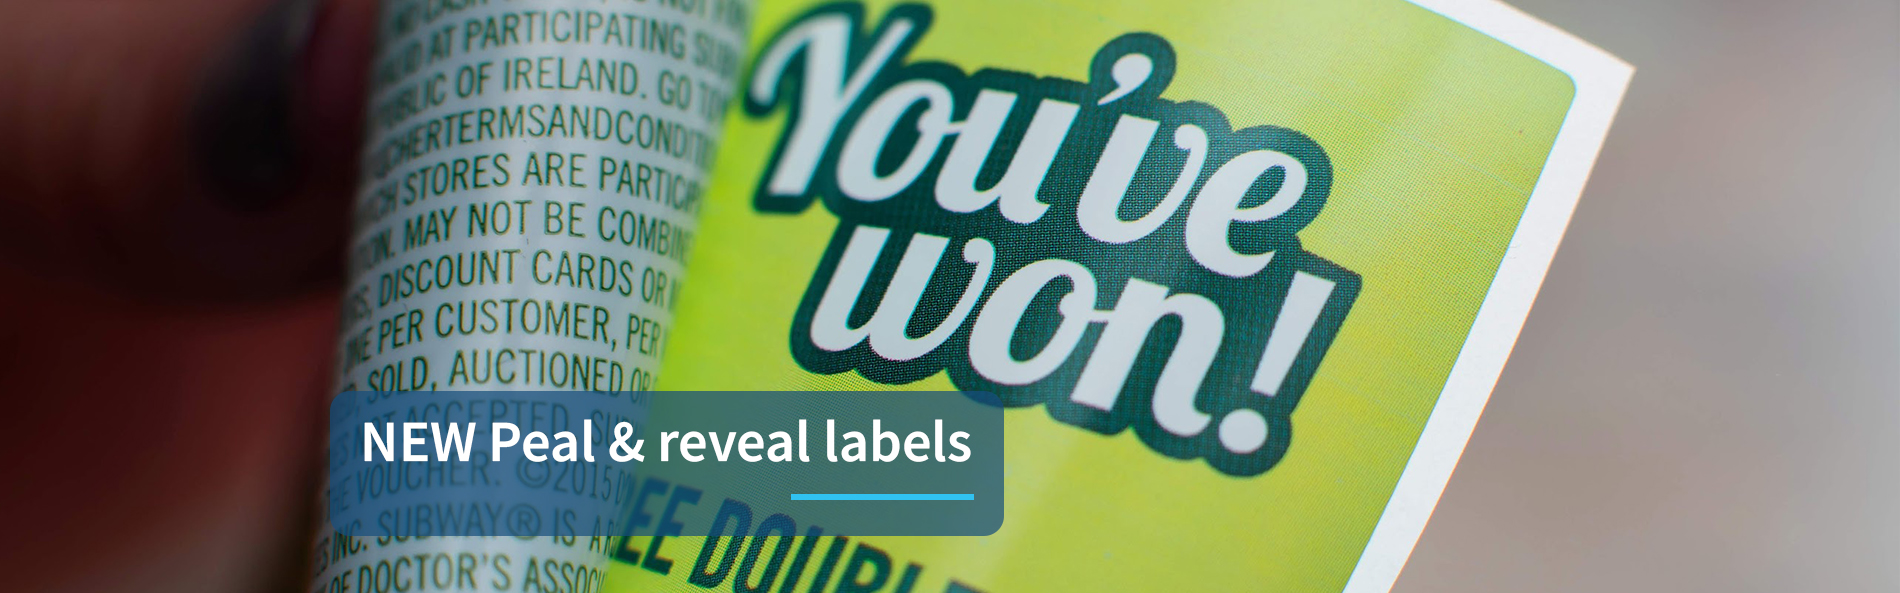 peal and reveal labels